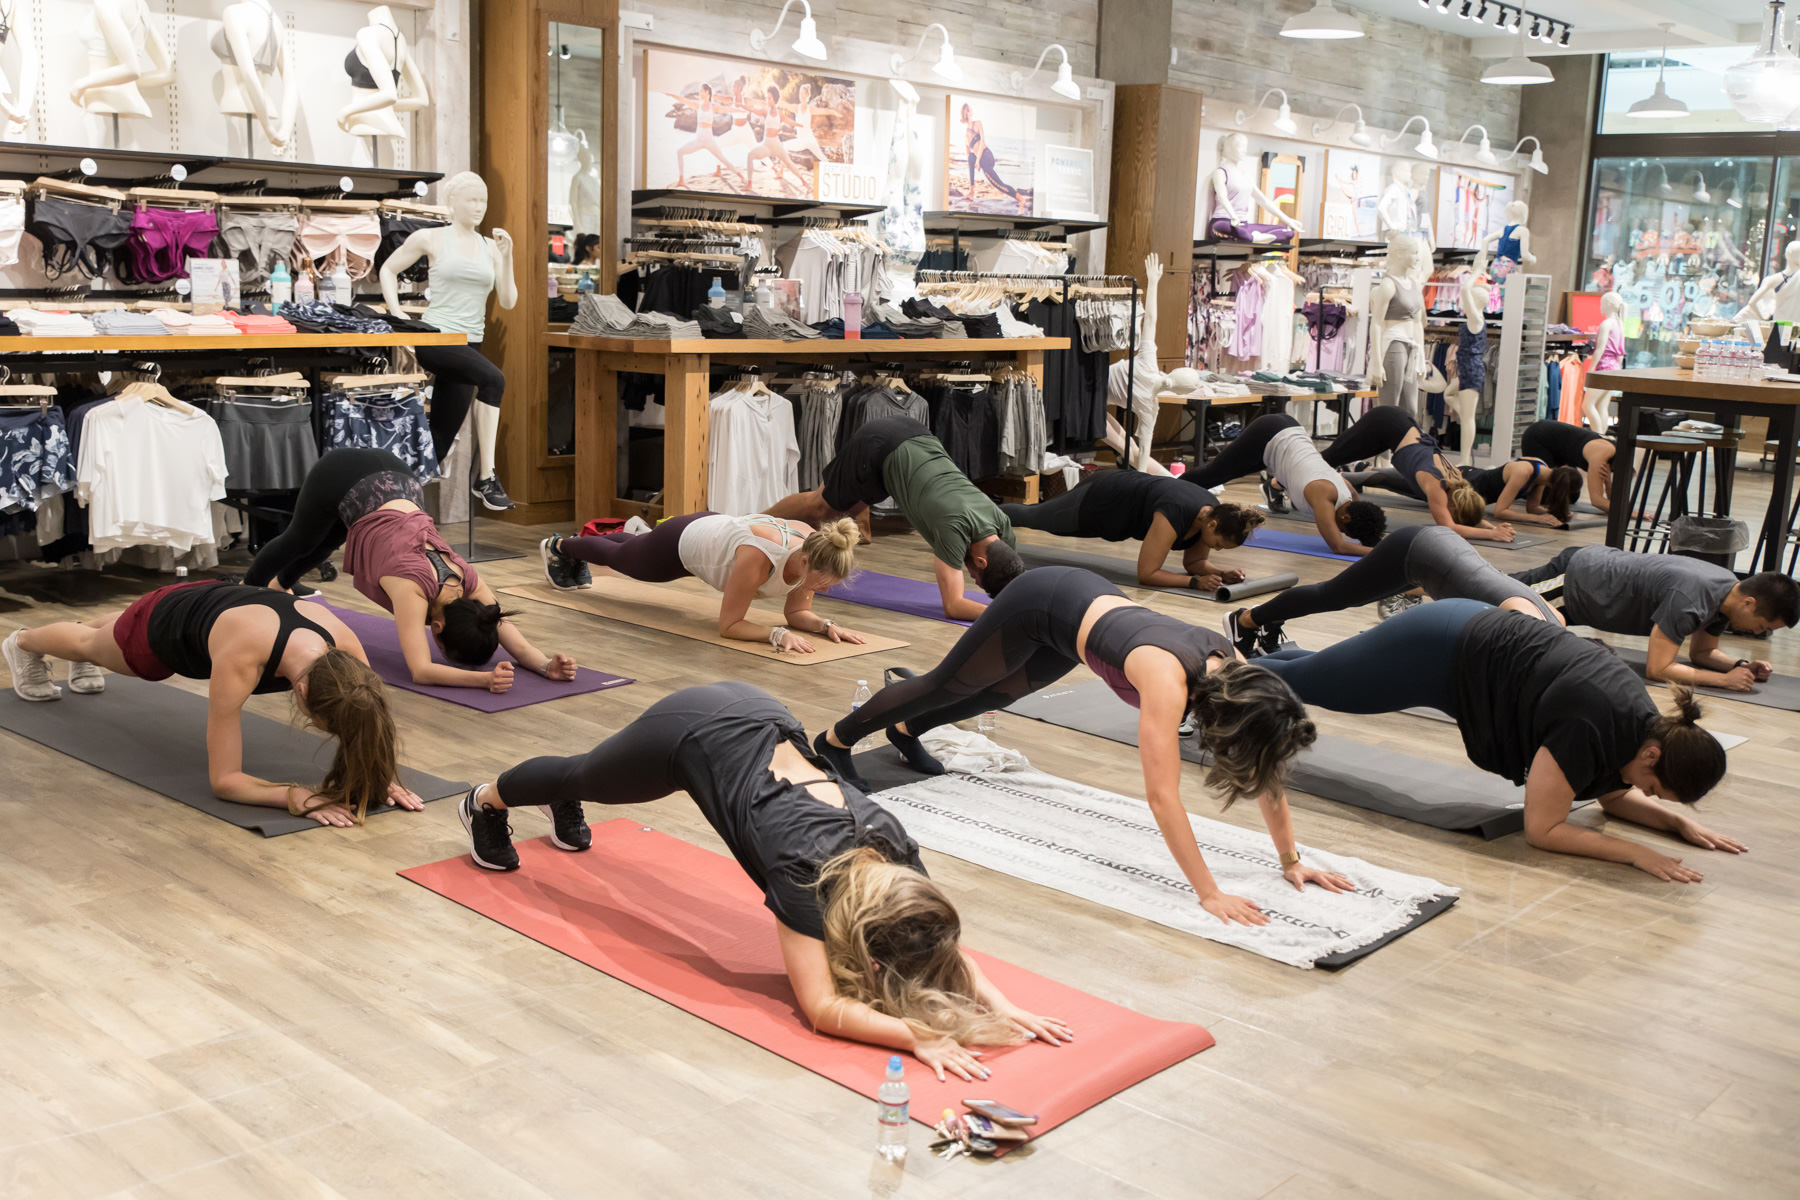 attendees-working-out-fitness-workshop-pegactive-inside-athleta-store-valley-fair-mall-san-jose.jpg